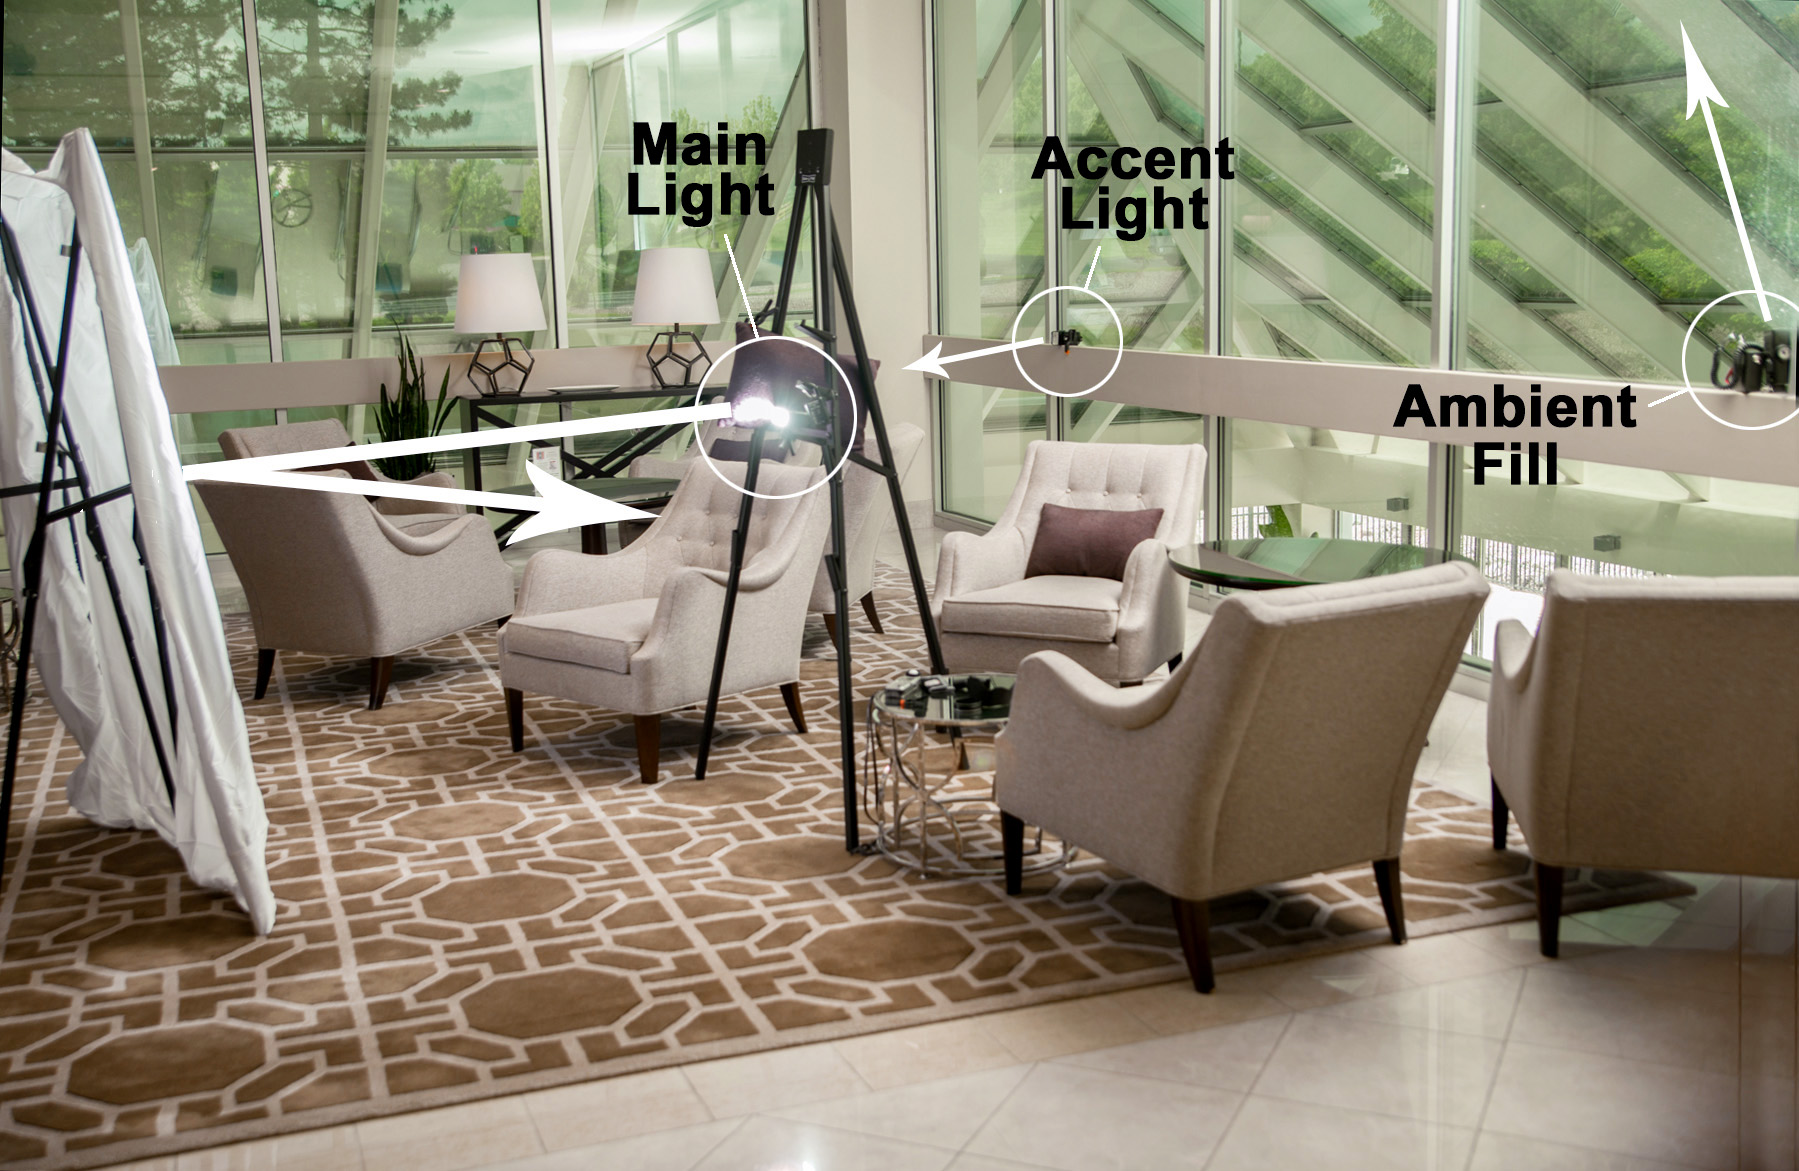 Lighting set up for head shots in a hotel lobby with impromptu equipment